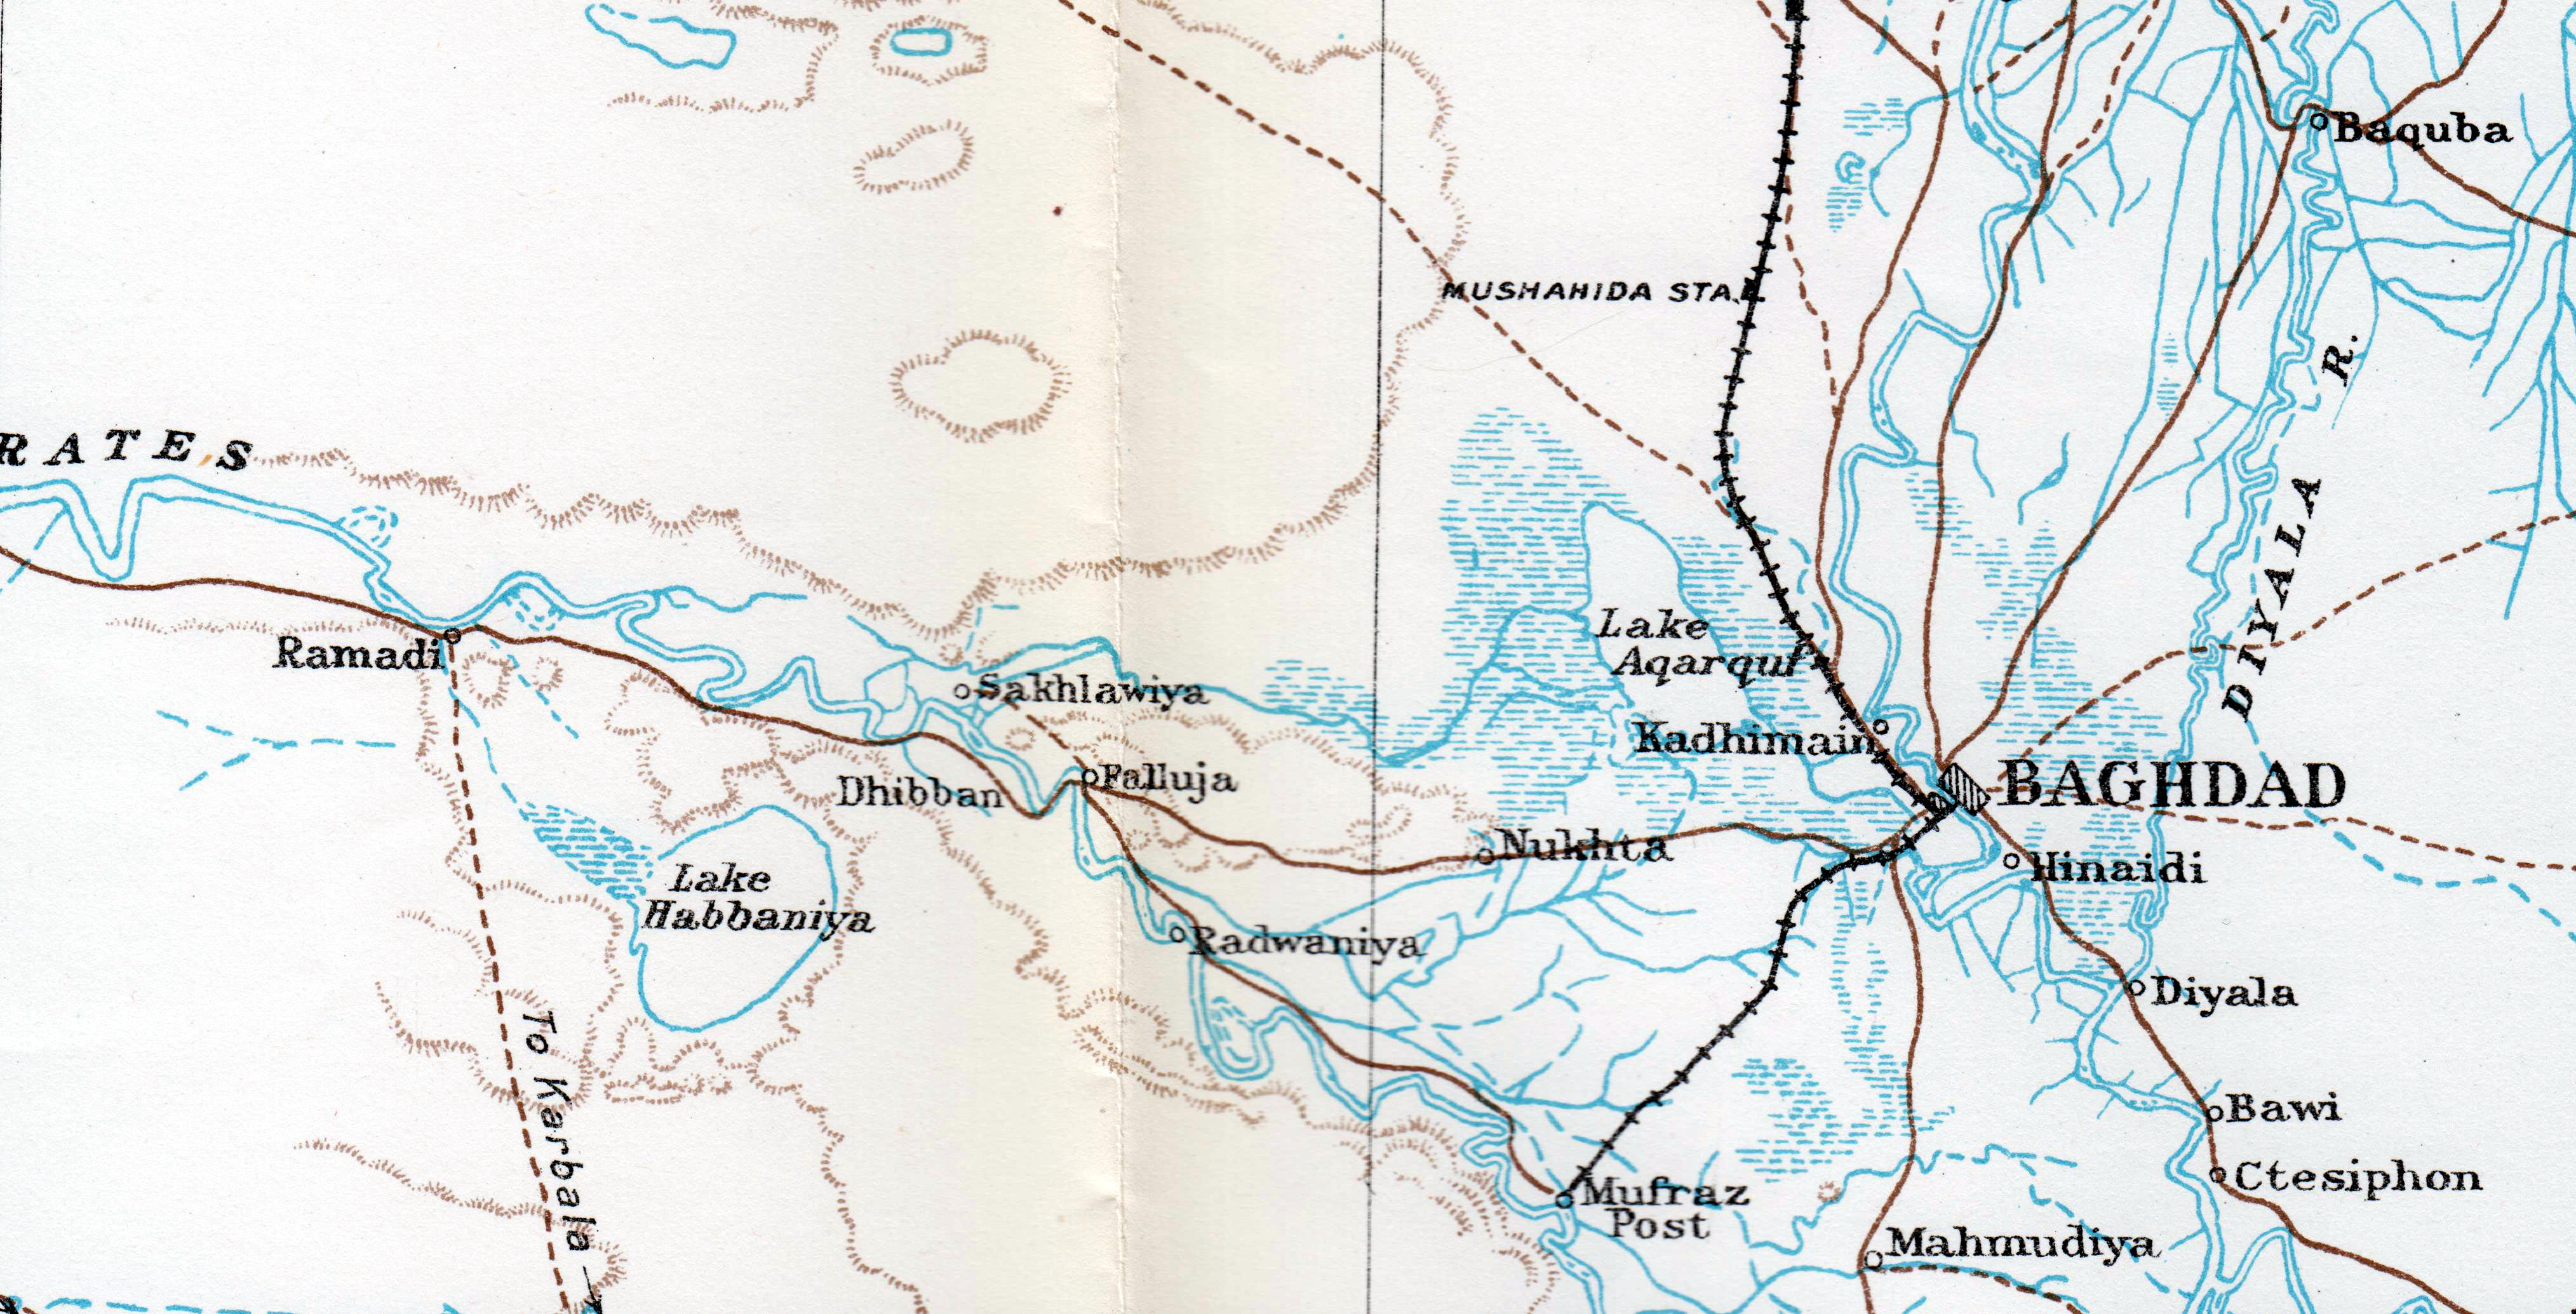 File:Euphrates from Ramadi to Baghdad 1917.jpg - Wikimedia Commons